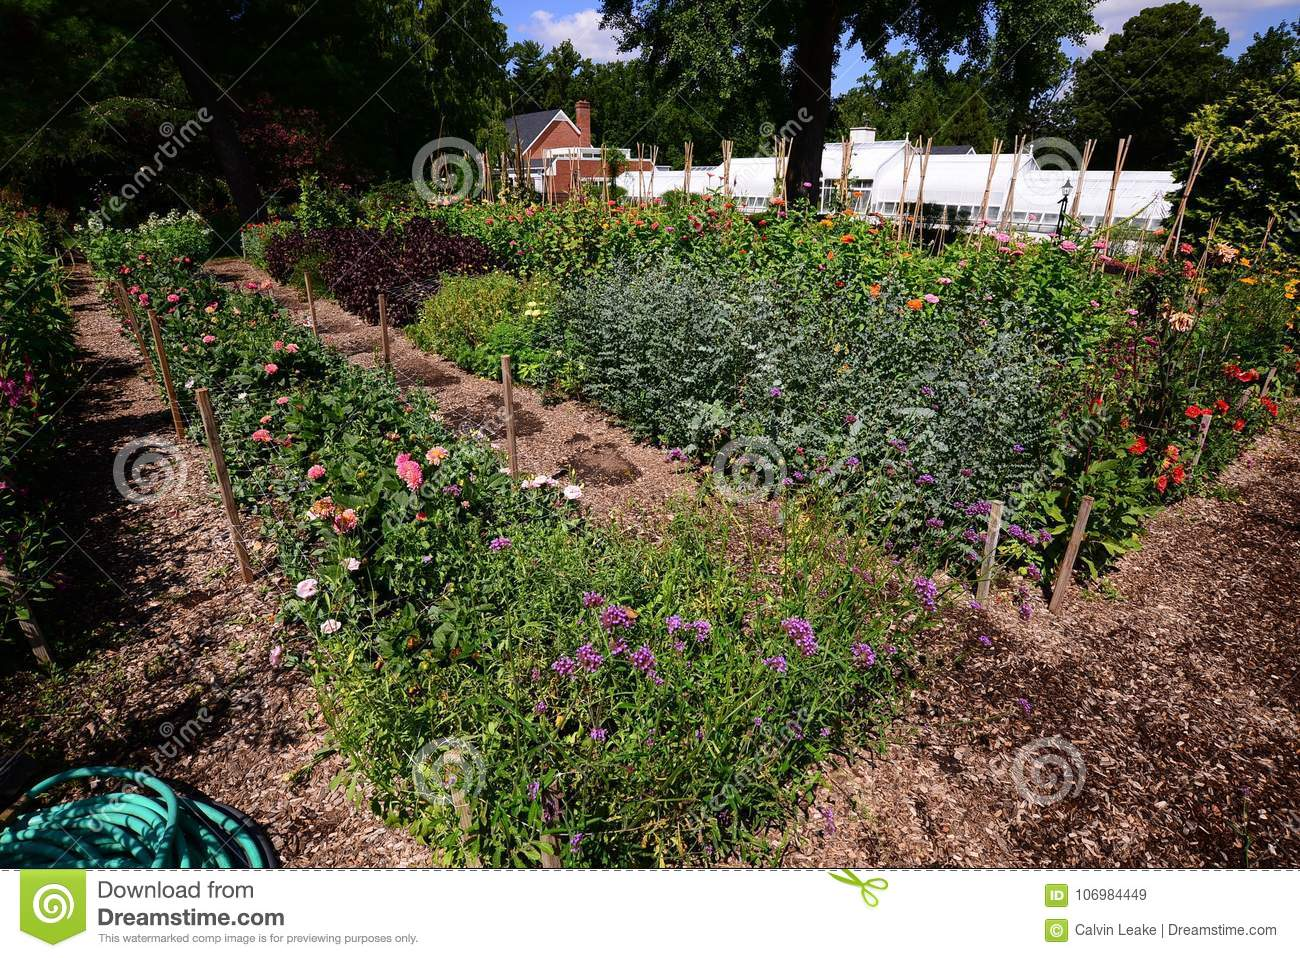 Vegetable and flower garden behind a home stock image image of vegetable and flower garden behind a home izmirmasajfo